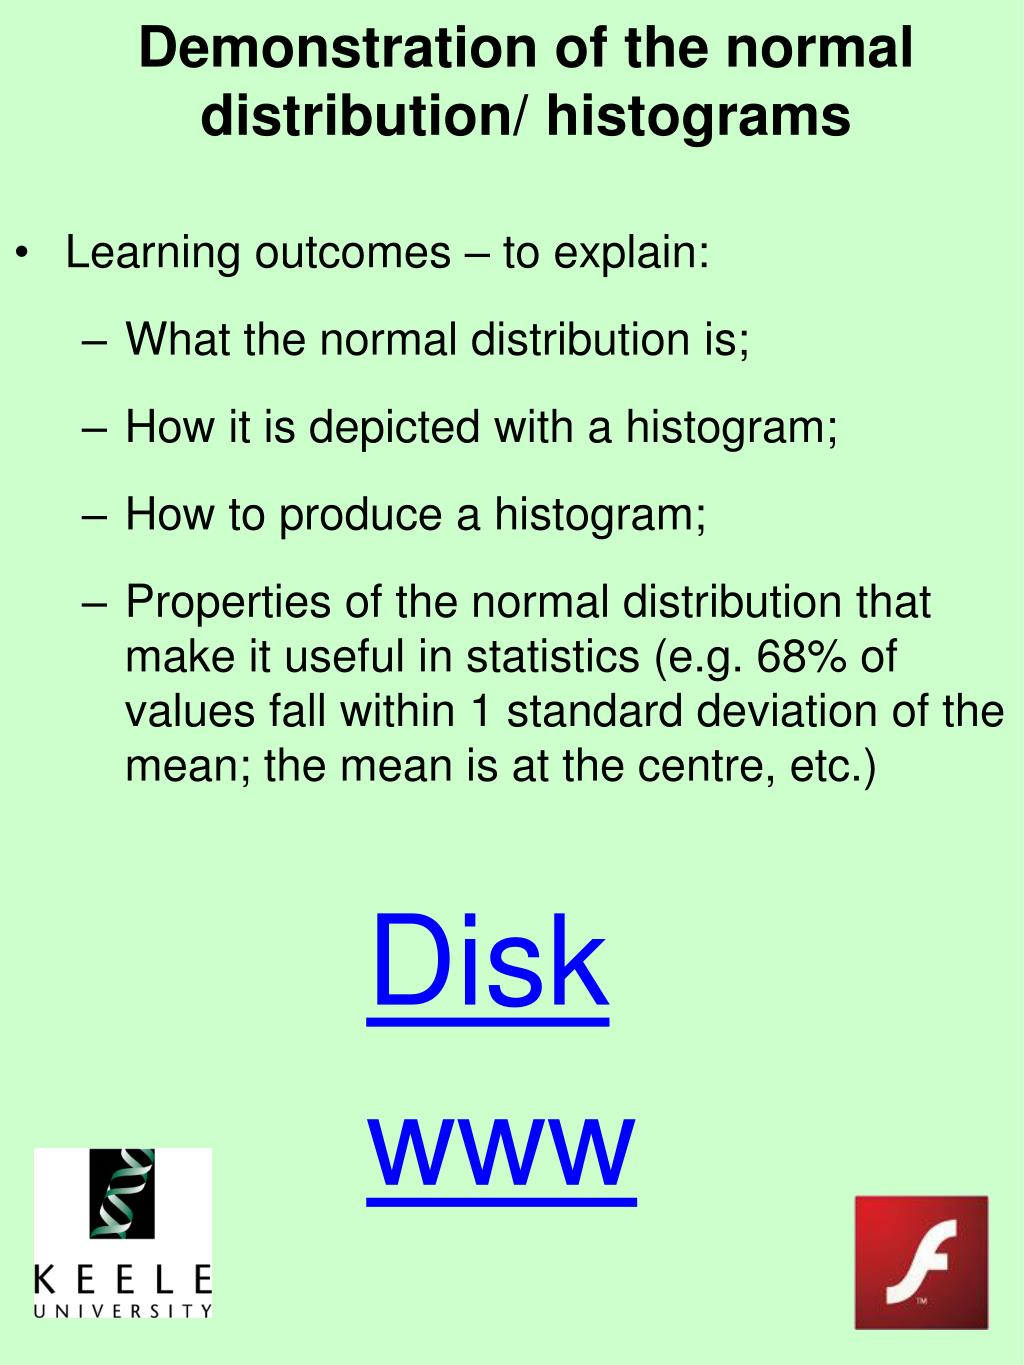 Demonstration of the normal distribution/ histograms